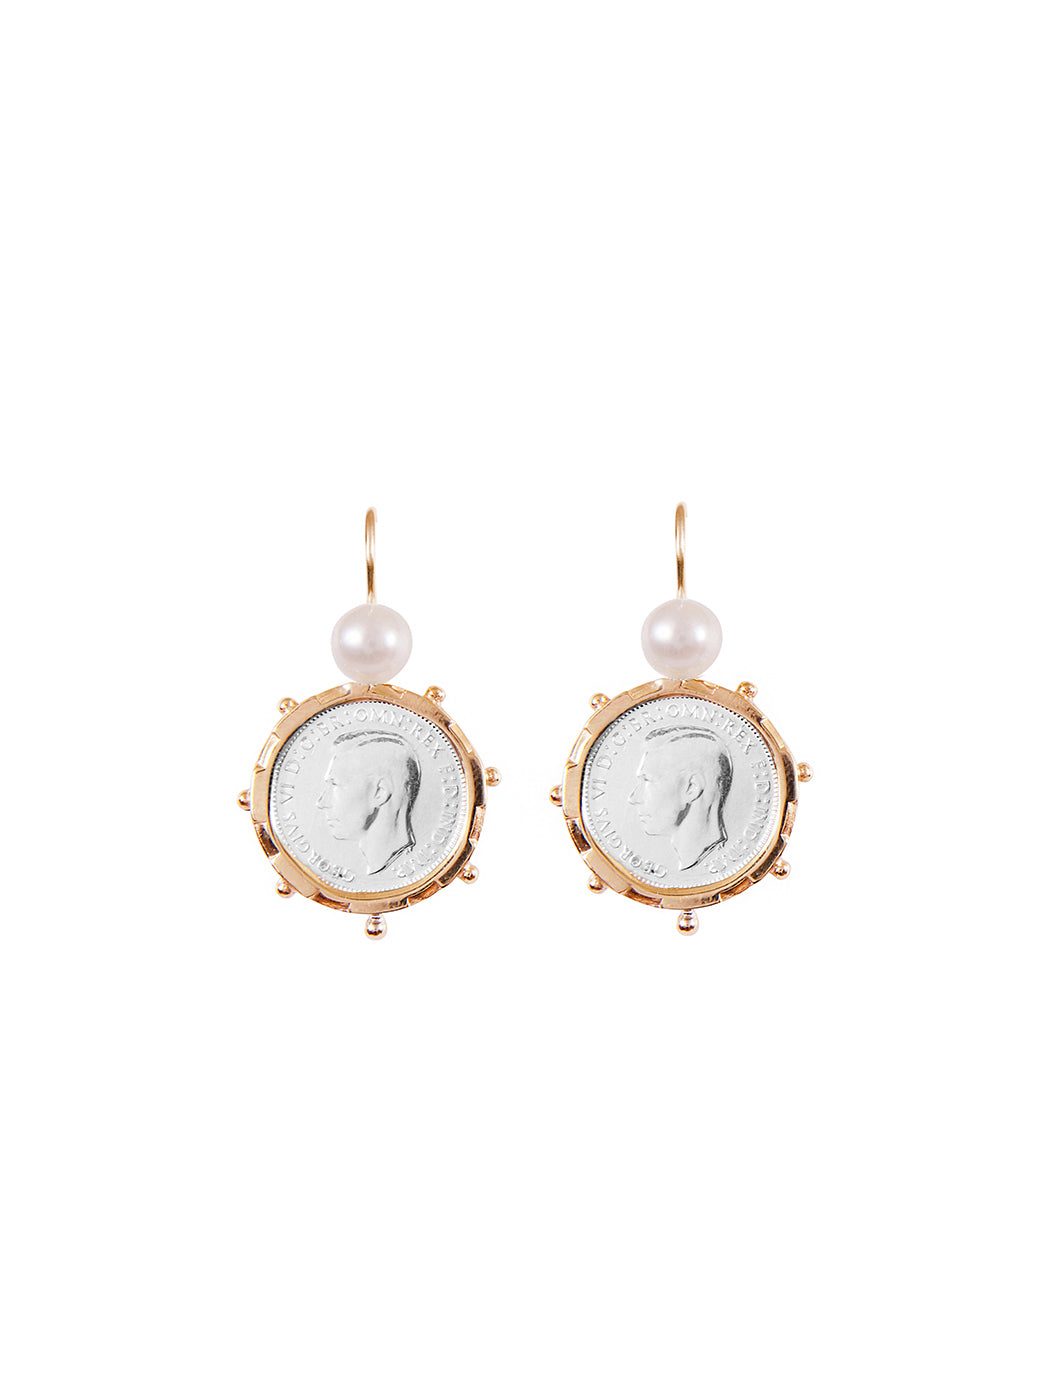 Fiorina Jewellery Gold Encased 6P Coin Earrings Pearl Highlights